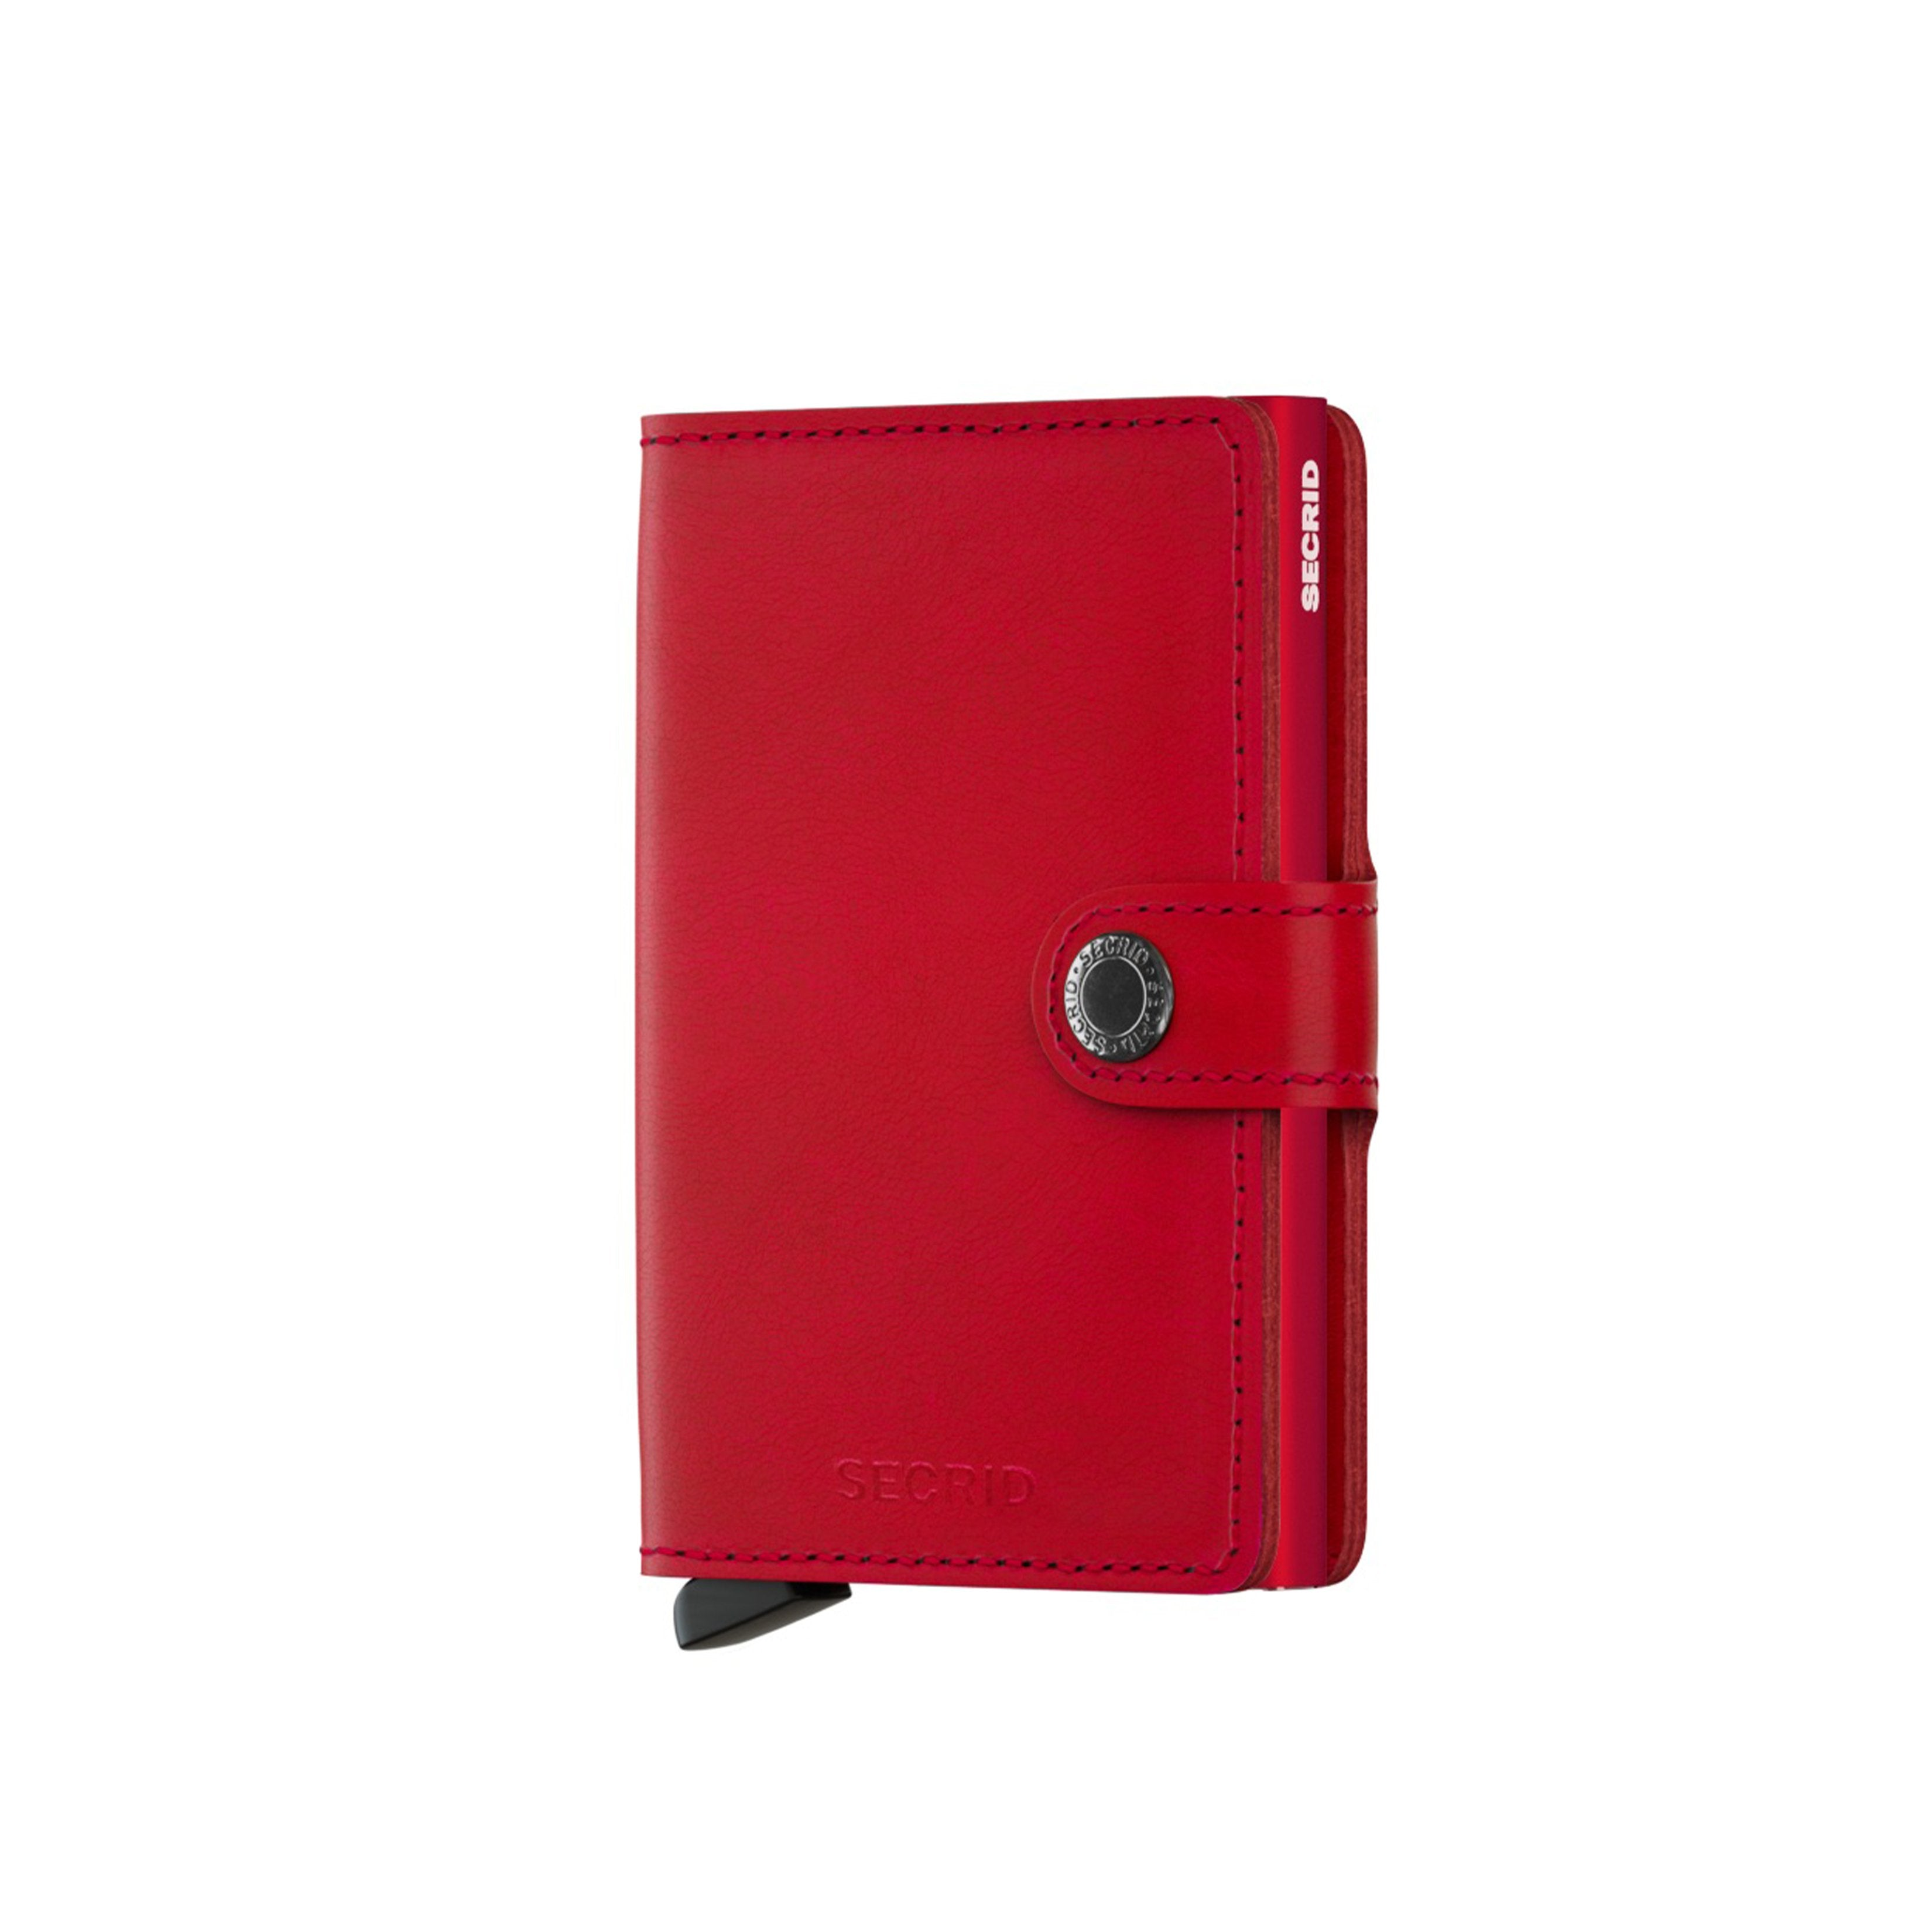 Miniwallet original red